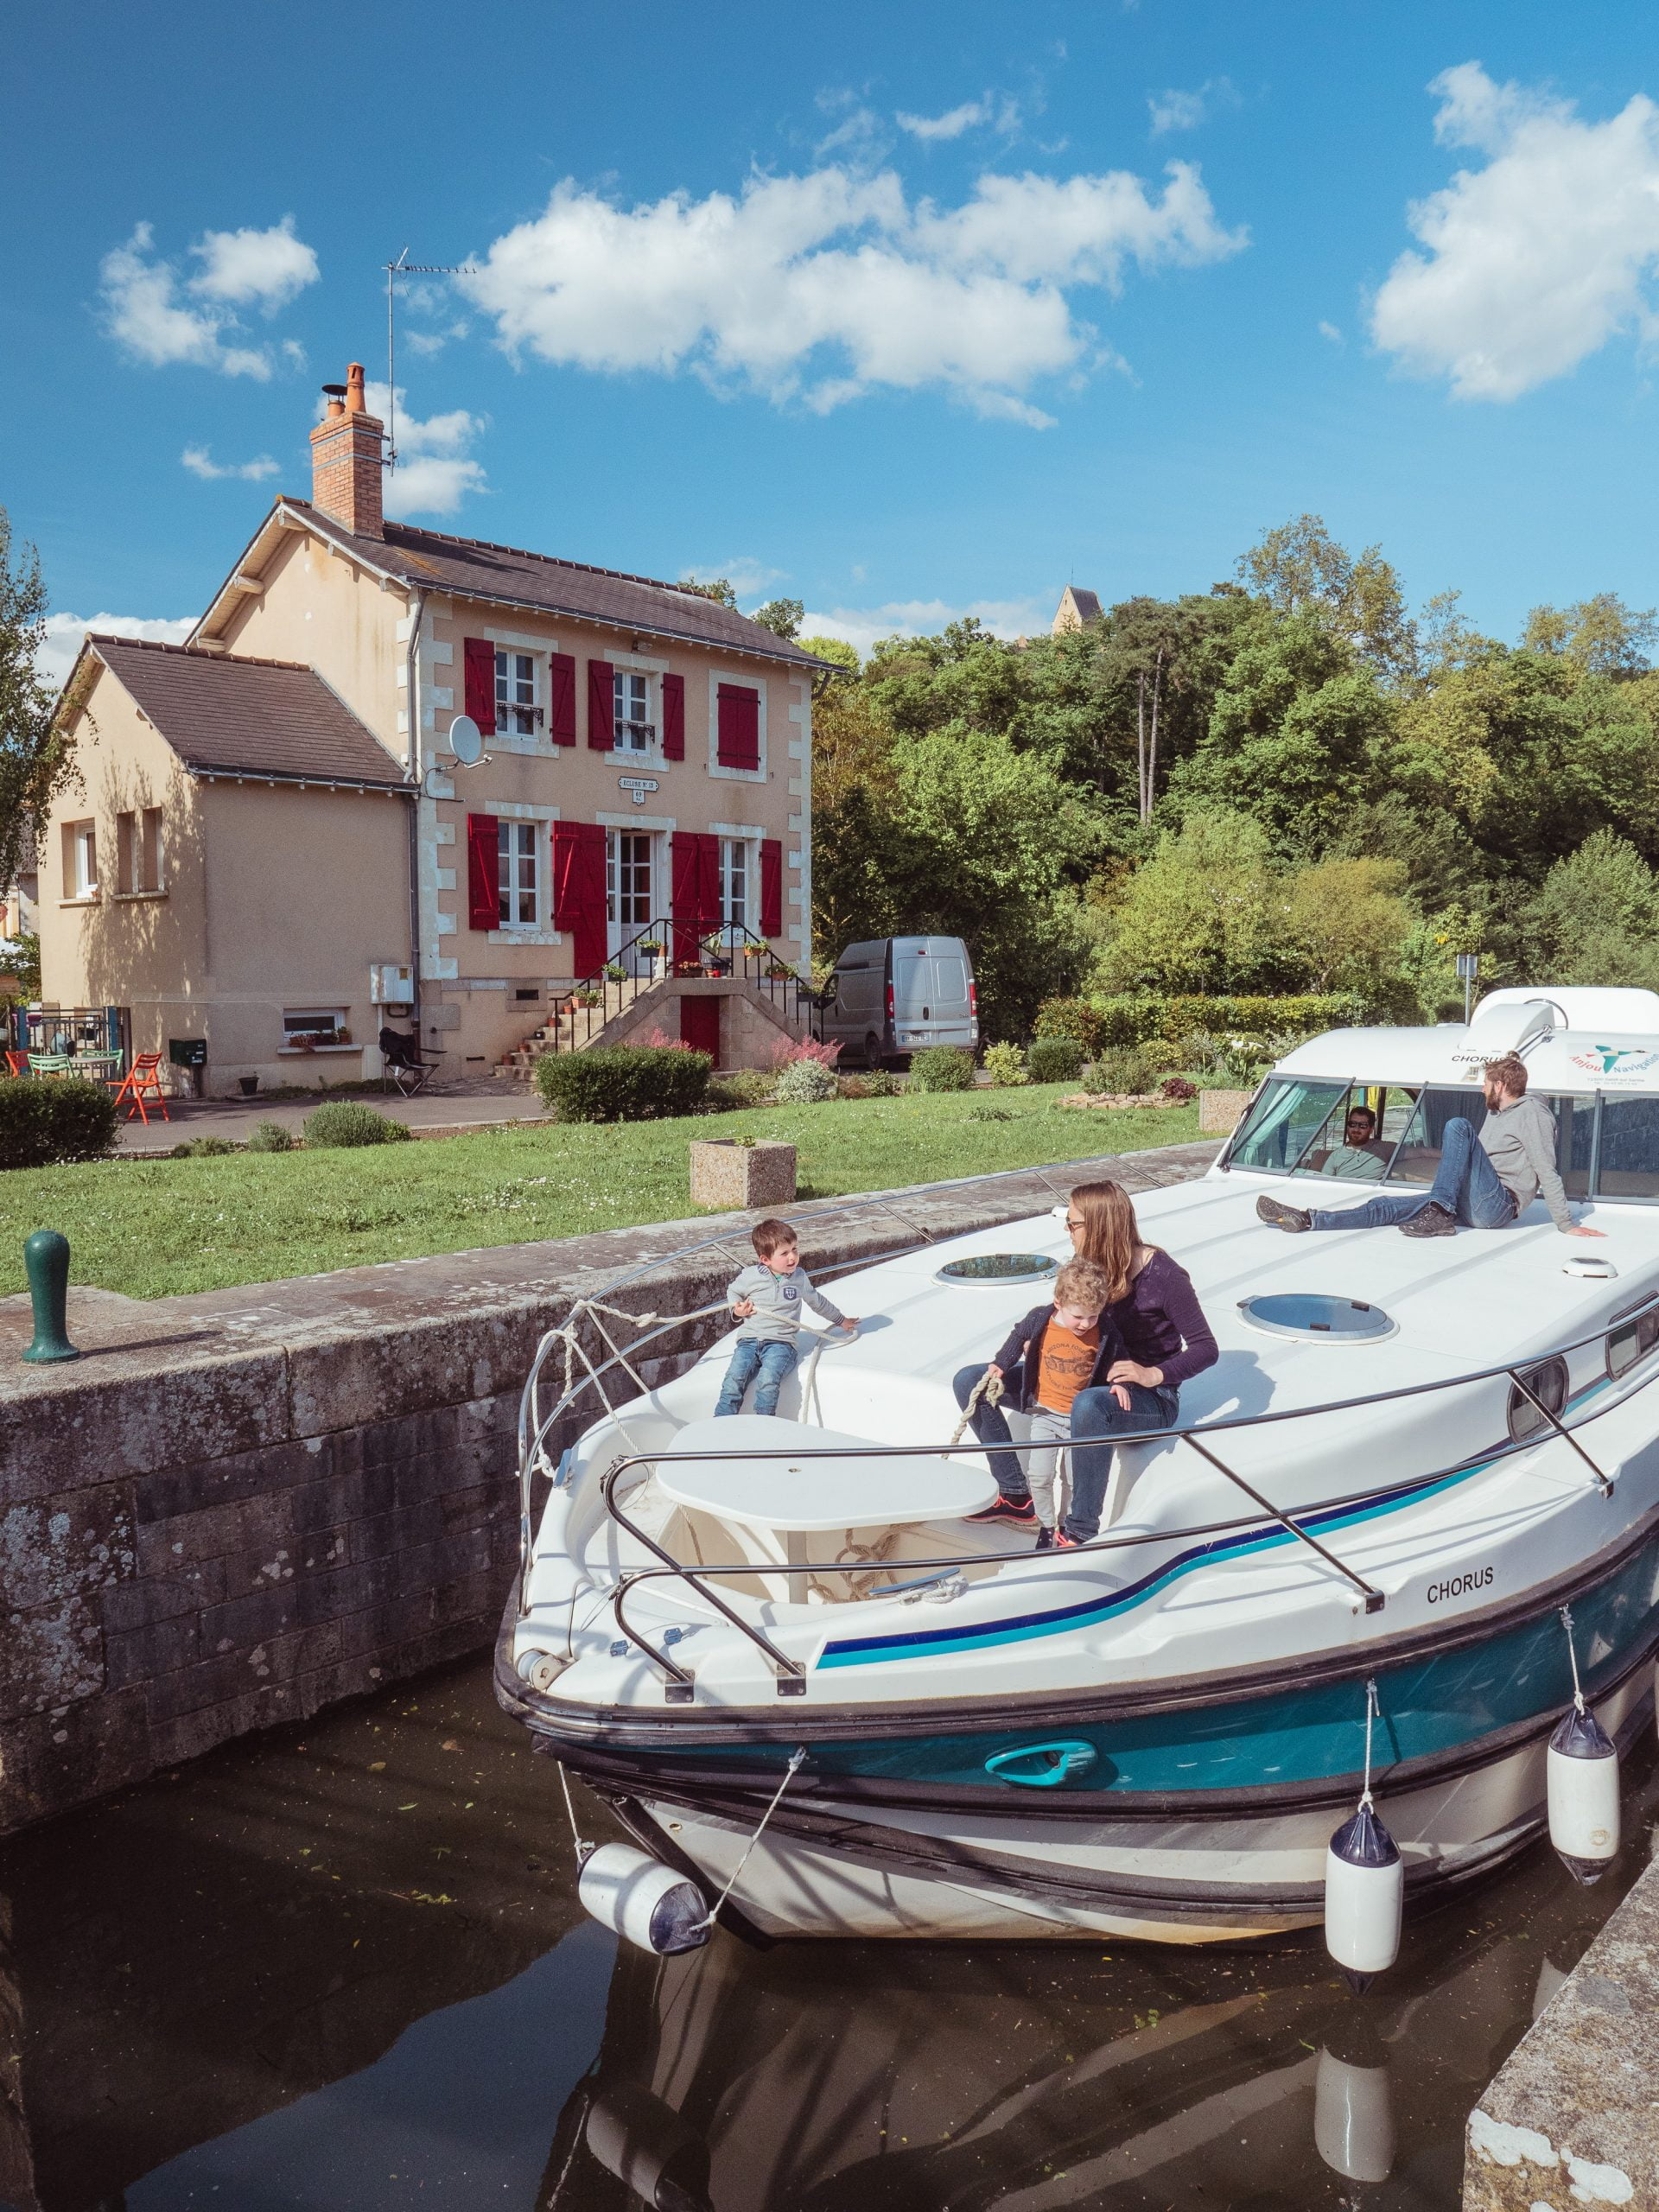 vall%C3%A9e sarthe 54307 scaled - Les globe blogueurs - blog voyage nature